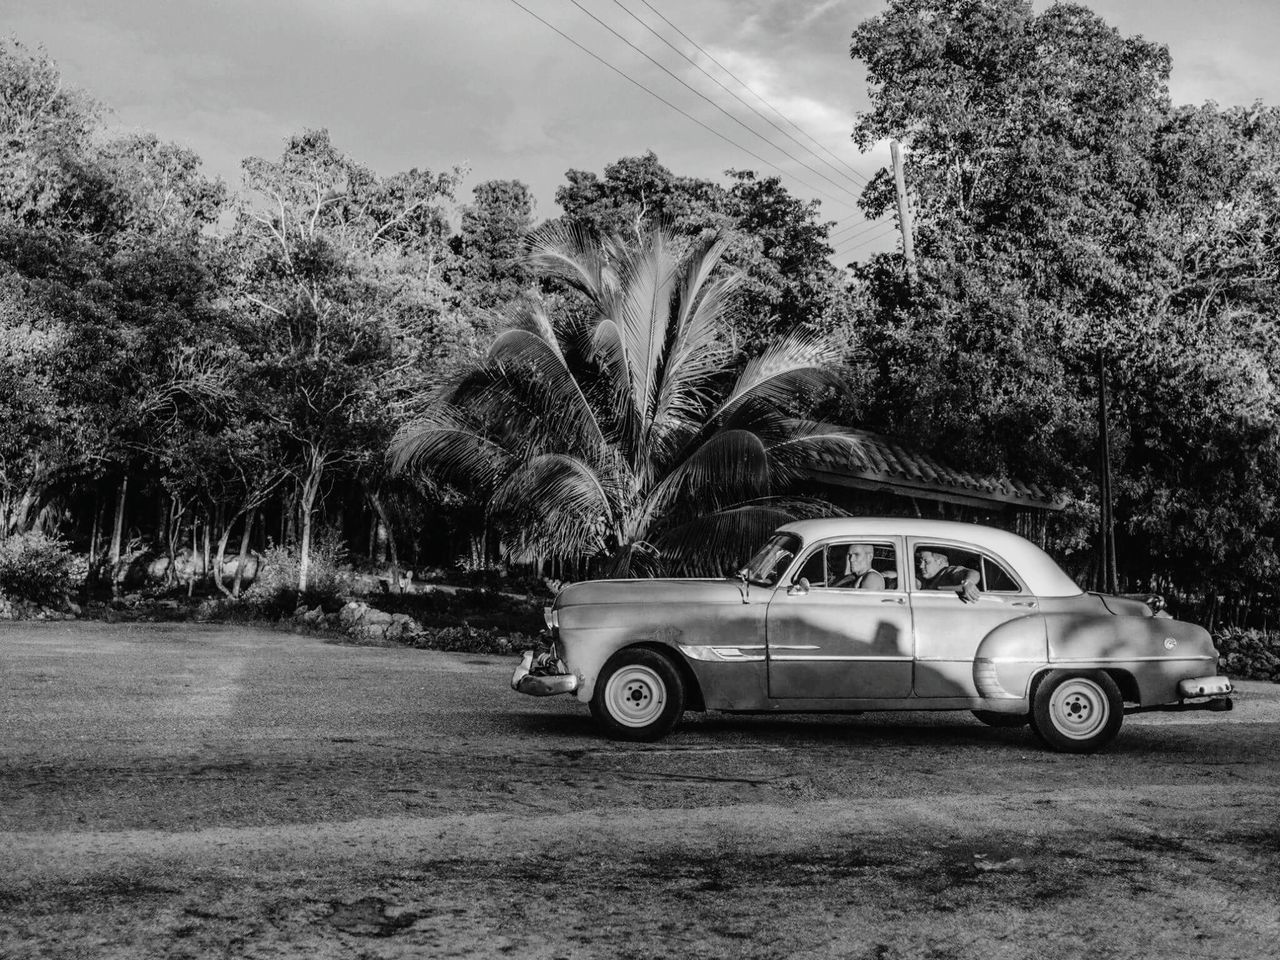 tree, car, growth, palm tree, transportation, nature, outdoors, sky, no people, day